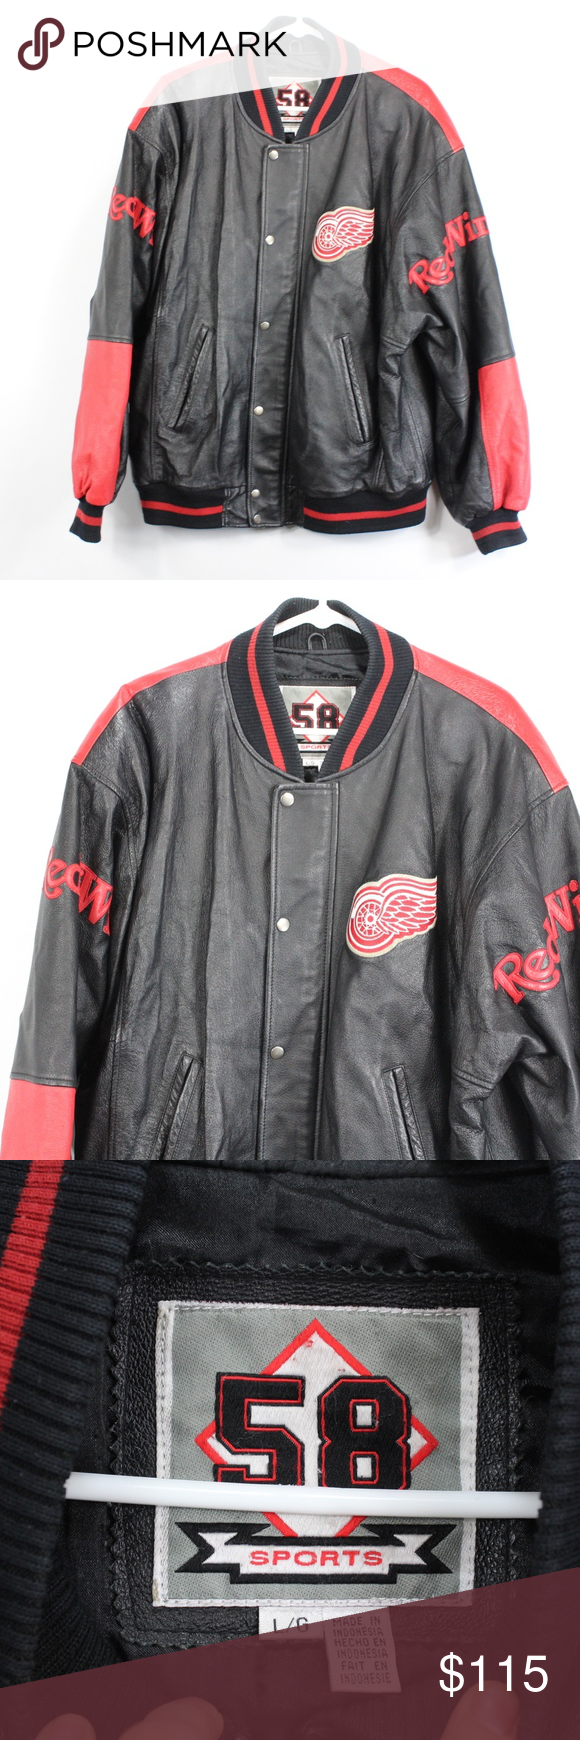 90s Mens Large Detroit Red Wings Leather Jacket Vintage 90s 58 Sports Detroit Red Wings Leather Bom Vintage Leather Jacket Leather Jacket Leather Bomber Jacket [ 1740 x 580 Pixel ]